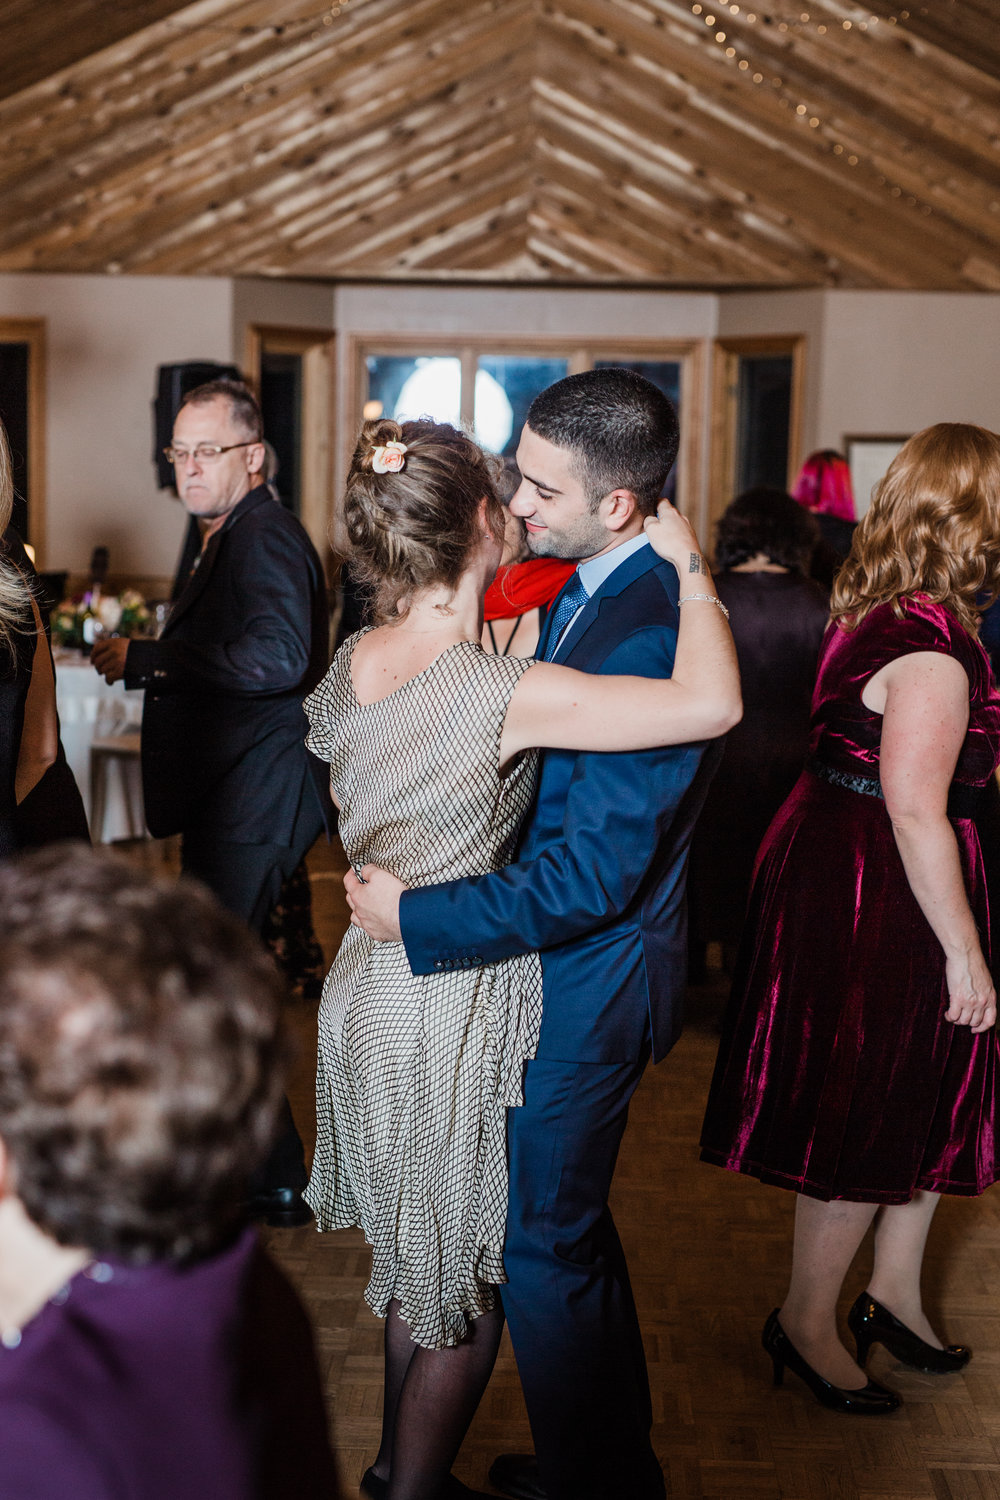 Amir-Golbazi-Danielle-Giroux-Photography_Toronto-Wedding_Cedarwood_Rachel-Paul_798.jpg